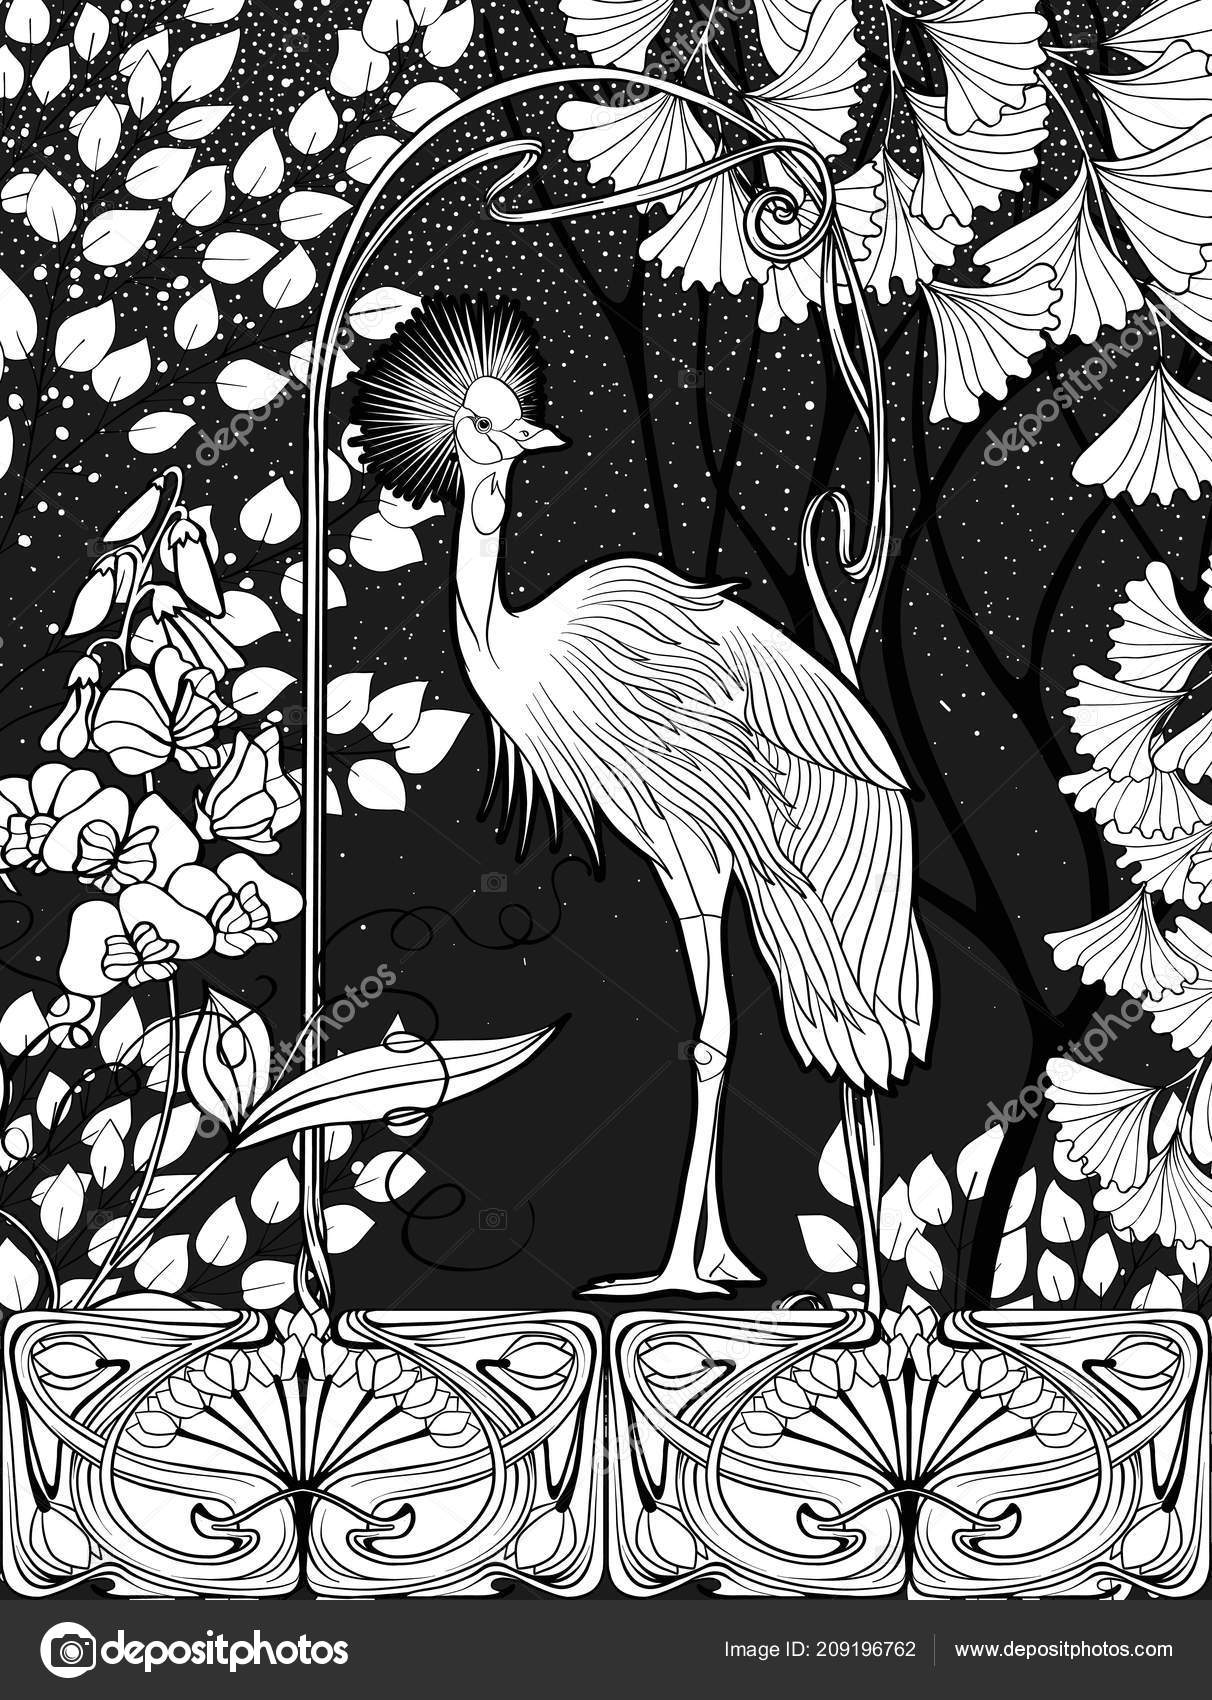 Poster background with decorative flowers and bird in art nouveau style black and white graphics vector illustration vector by elenabesedina